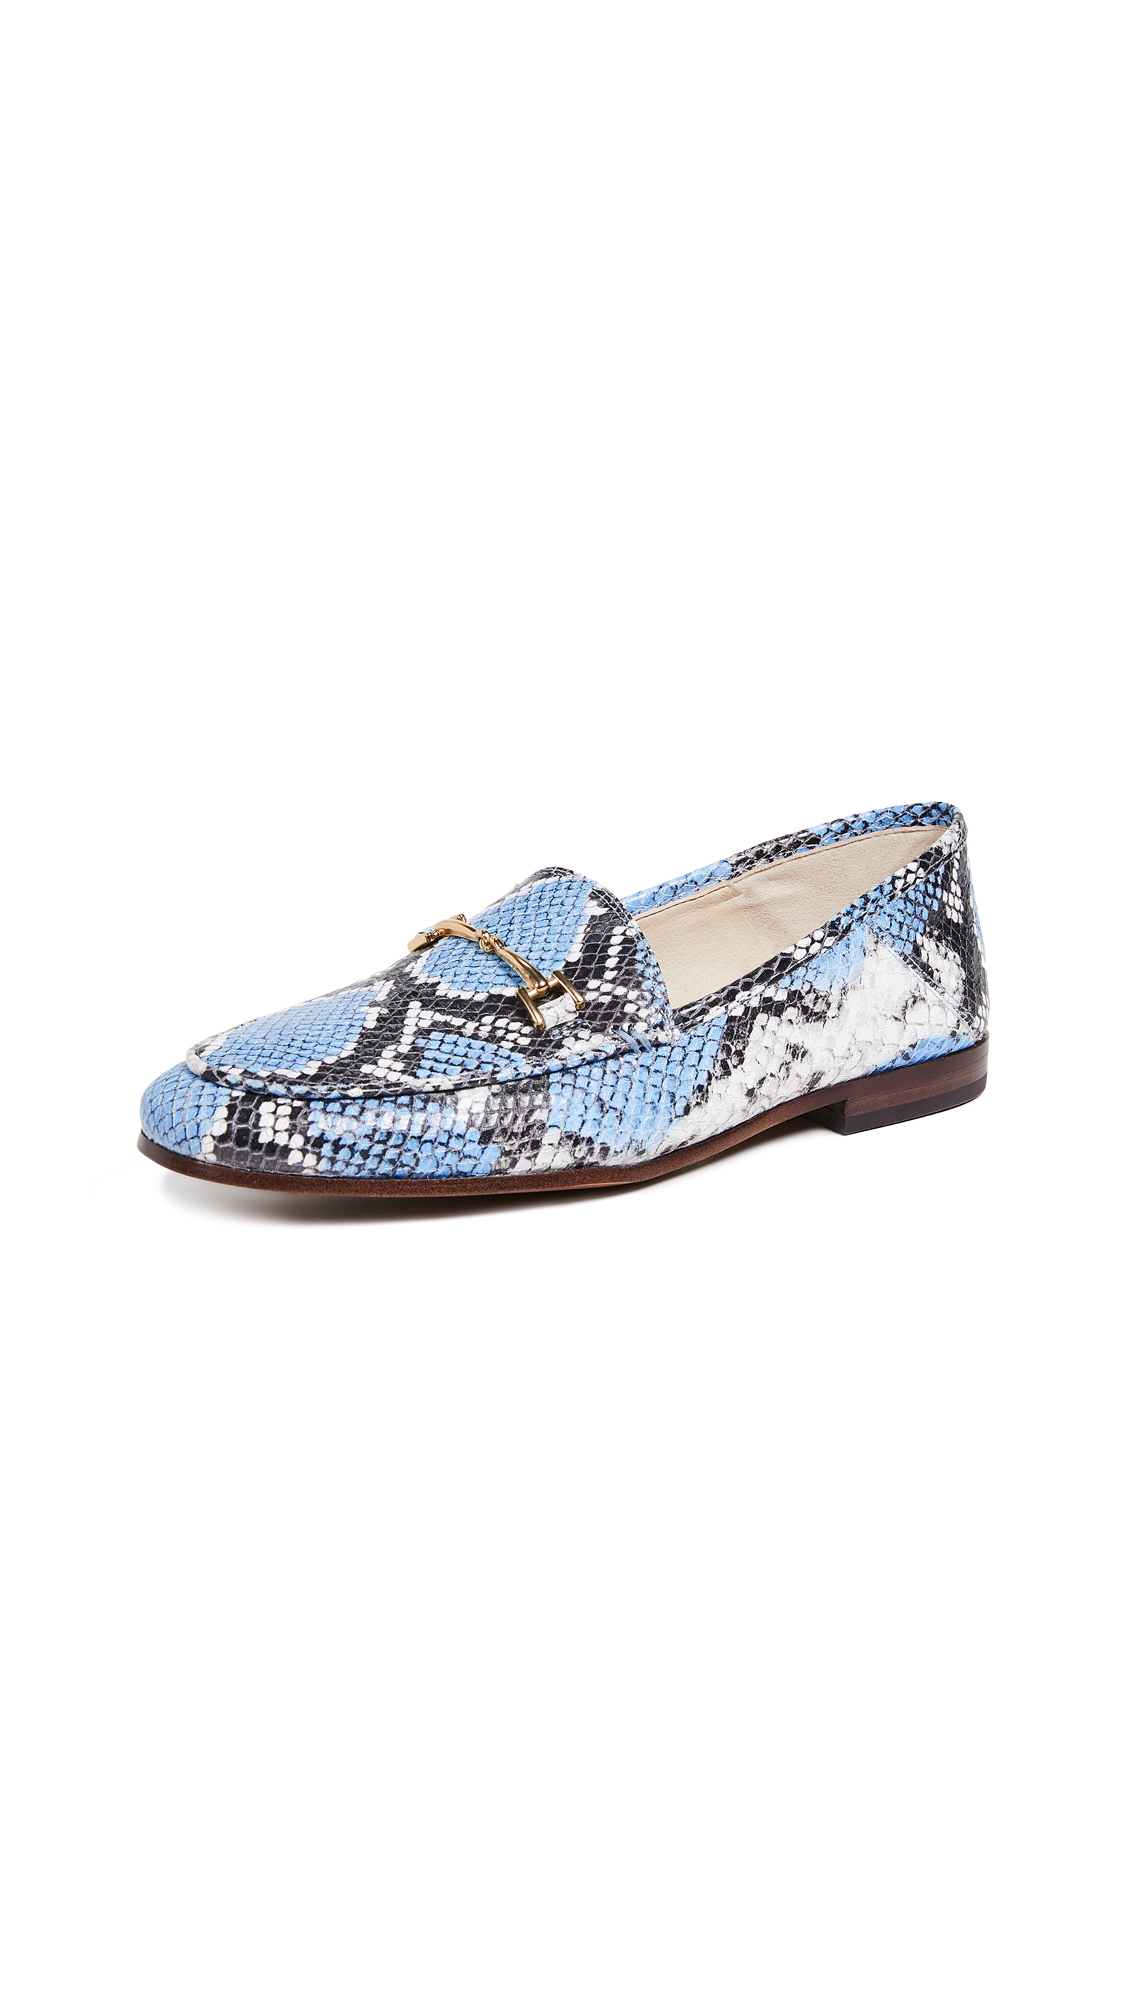 Sam Edelman Loraine Loafers - Cornflower Blue Multi